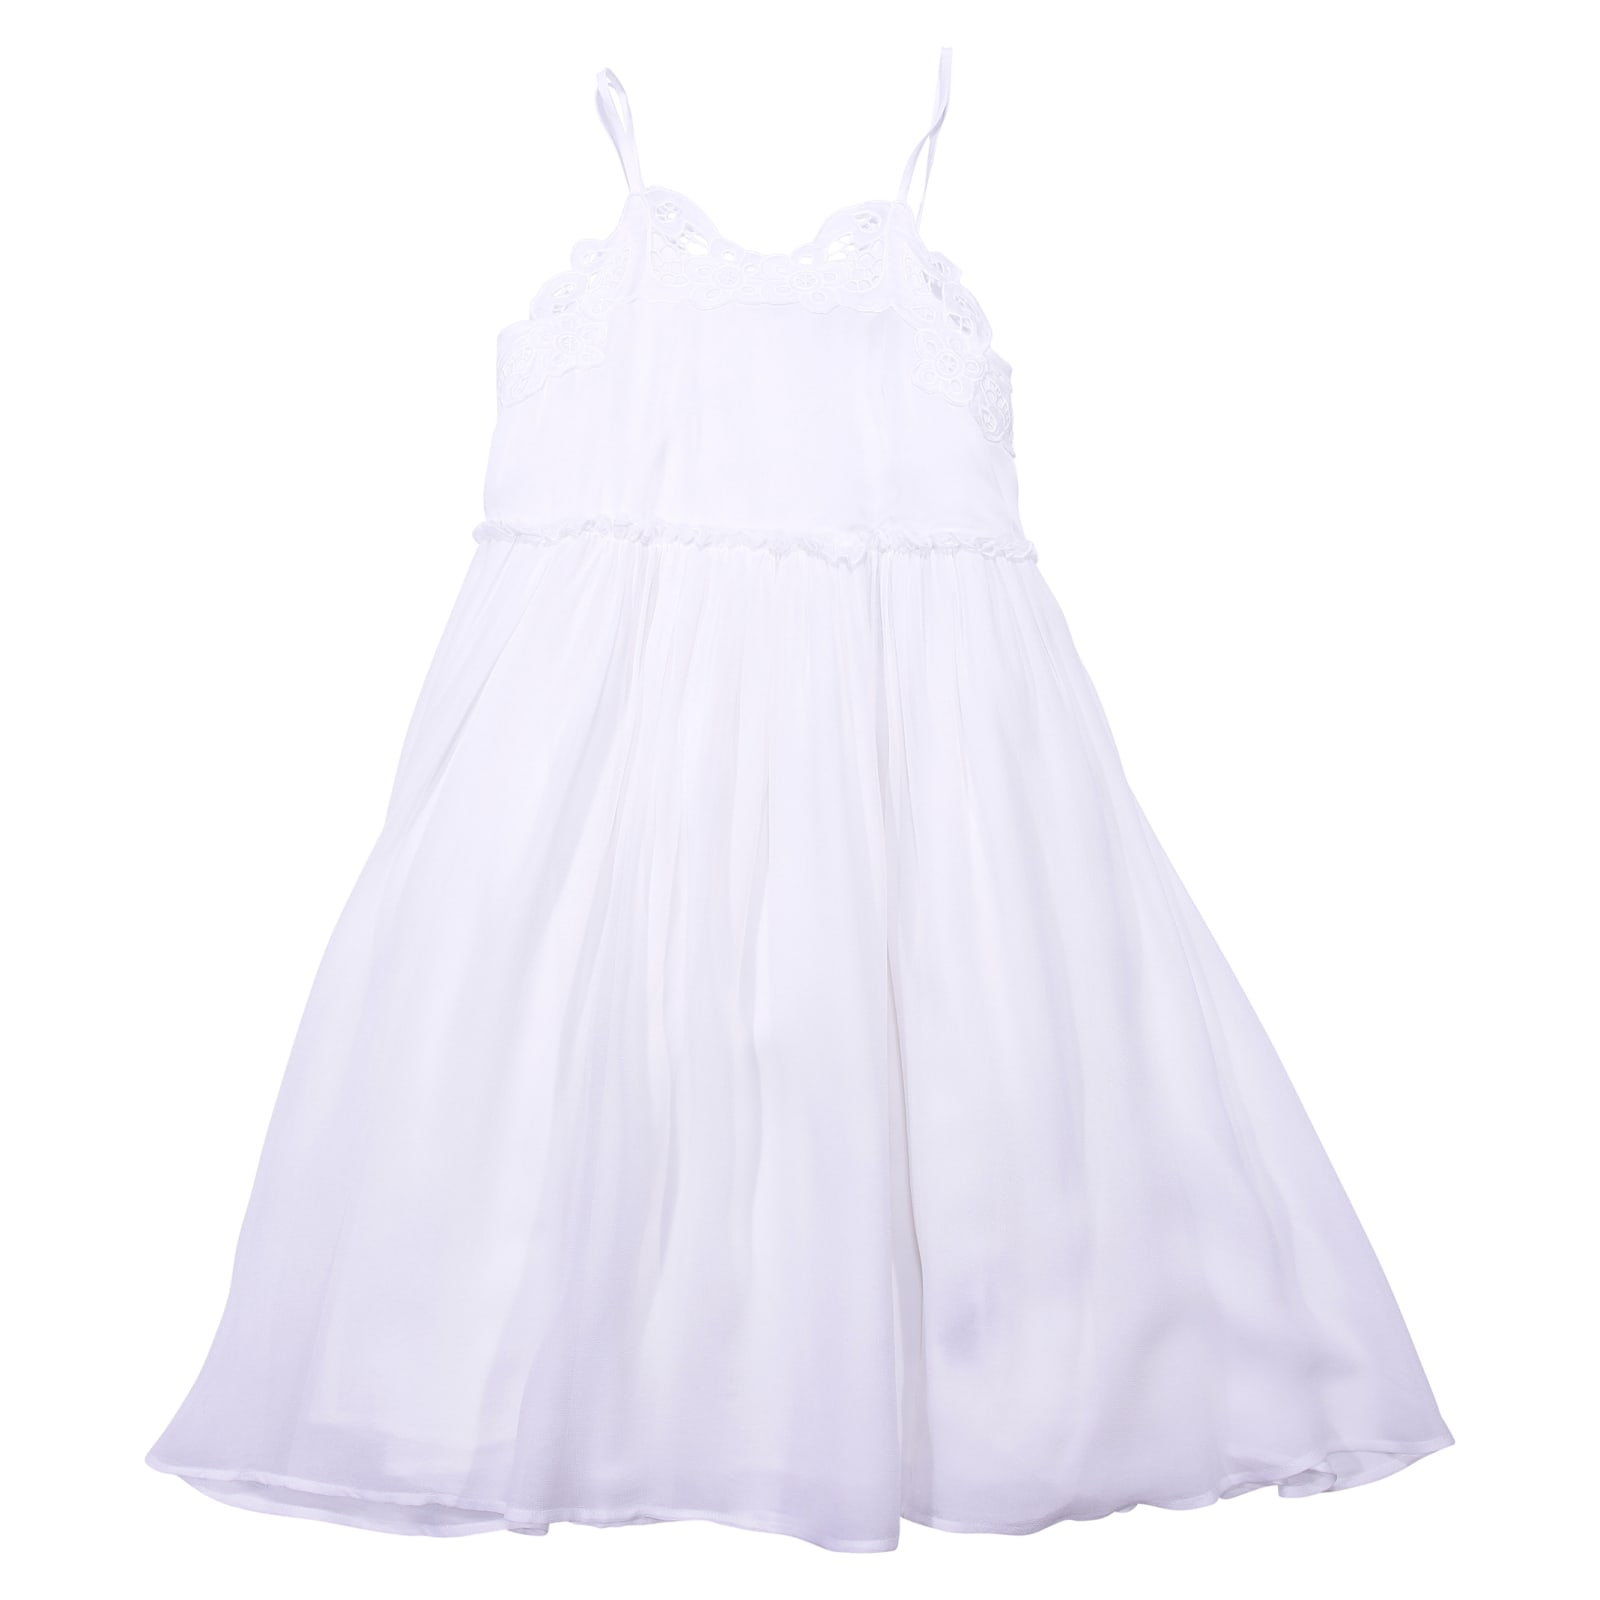 Stella McCartney White Silk & Tulle Dress